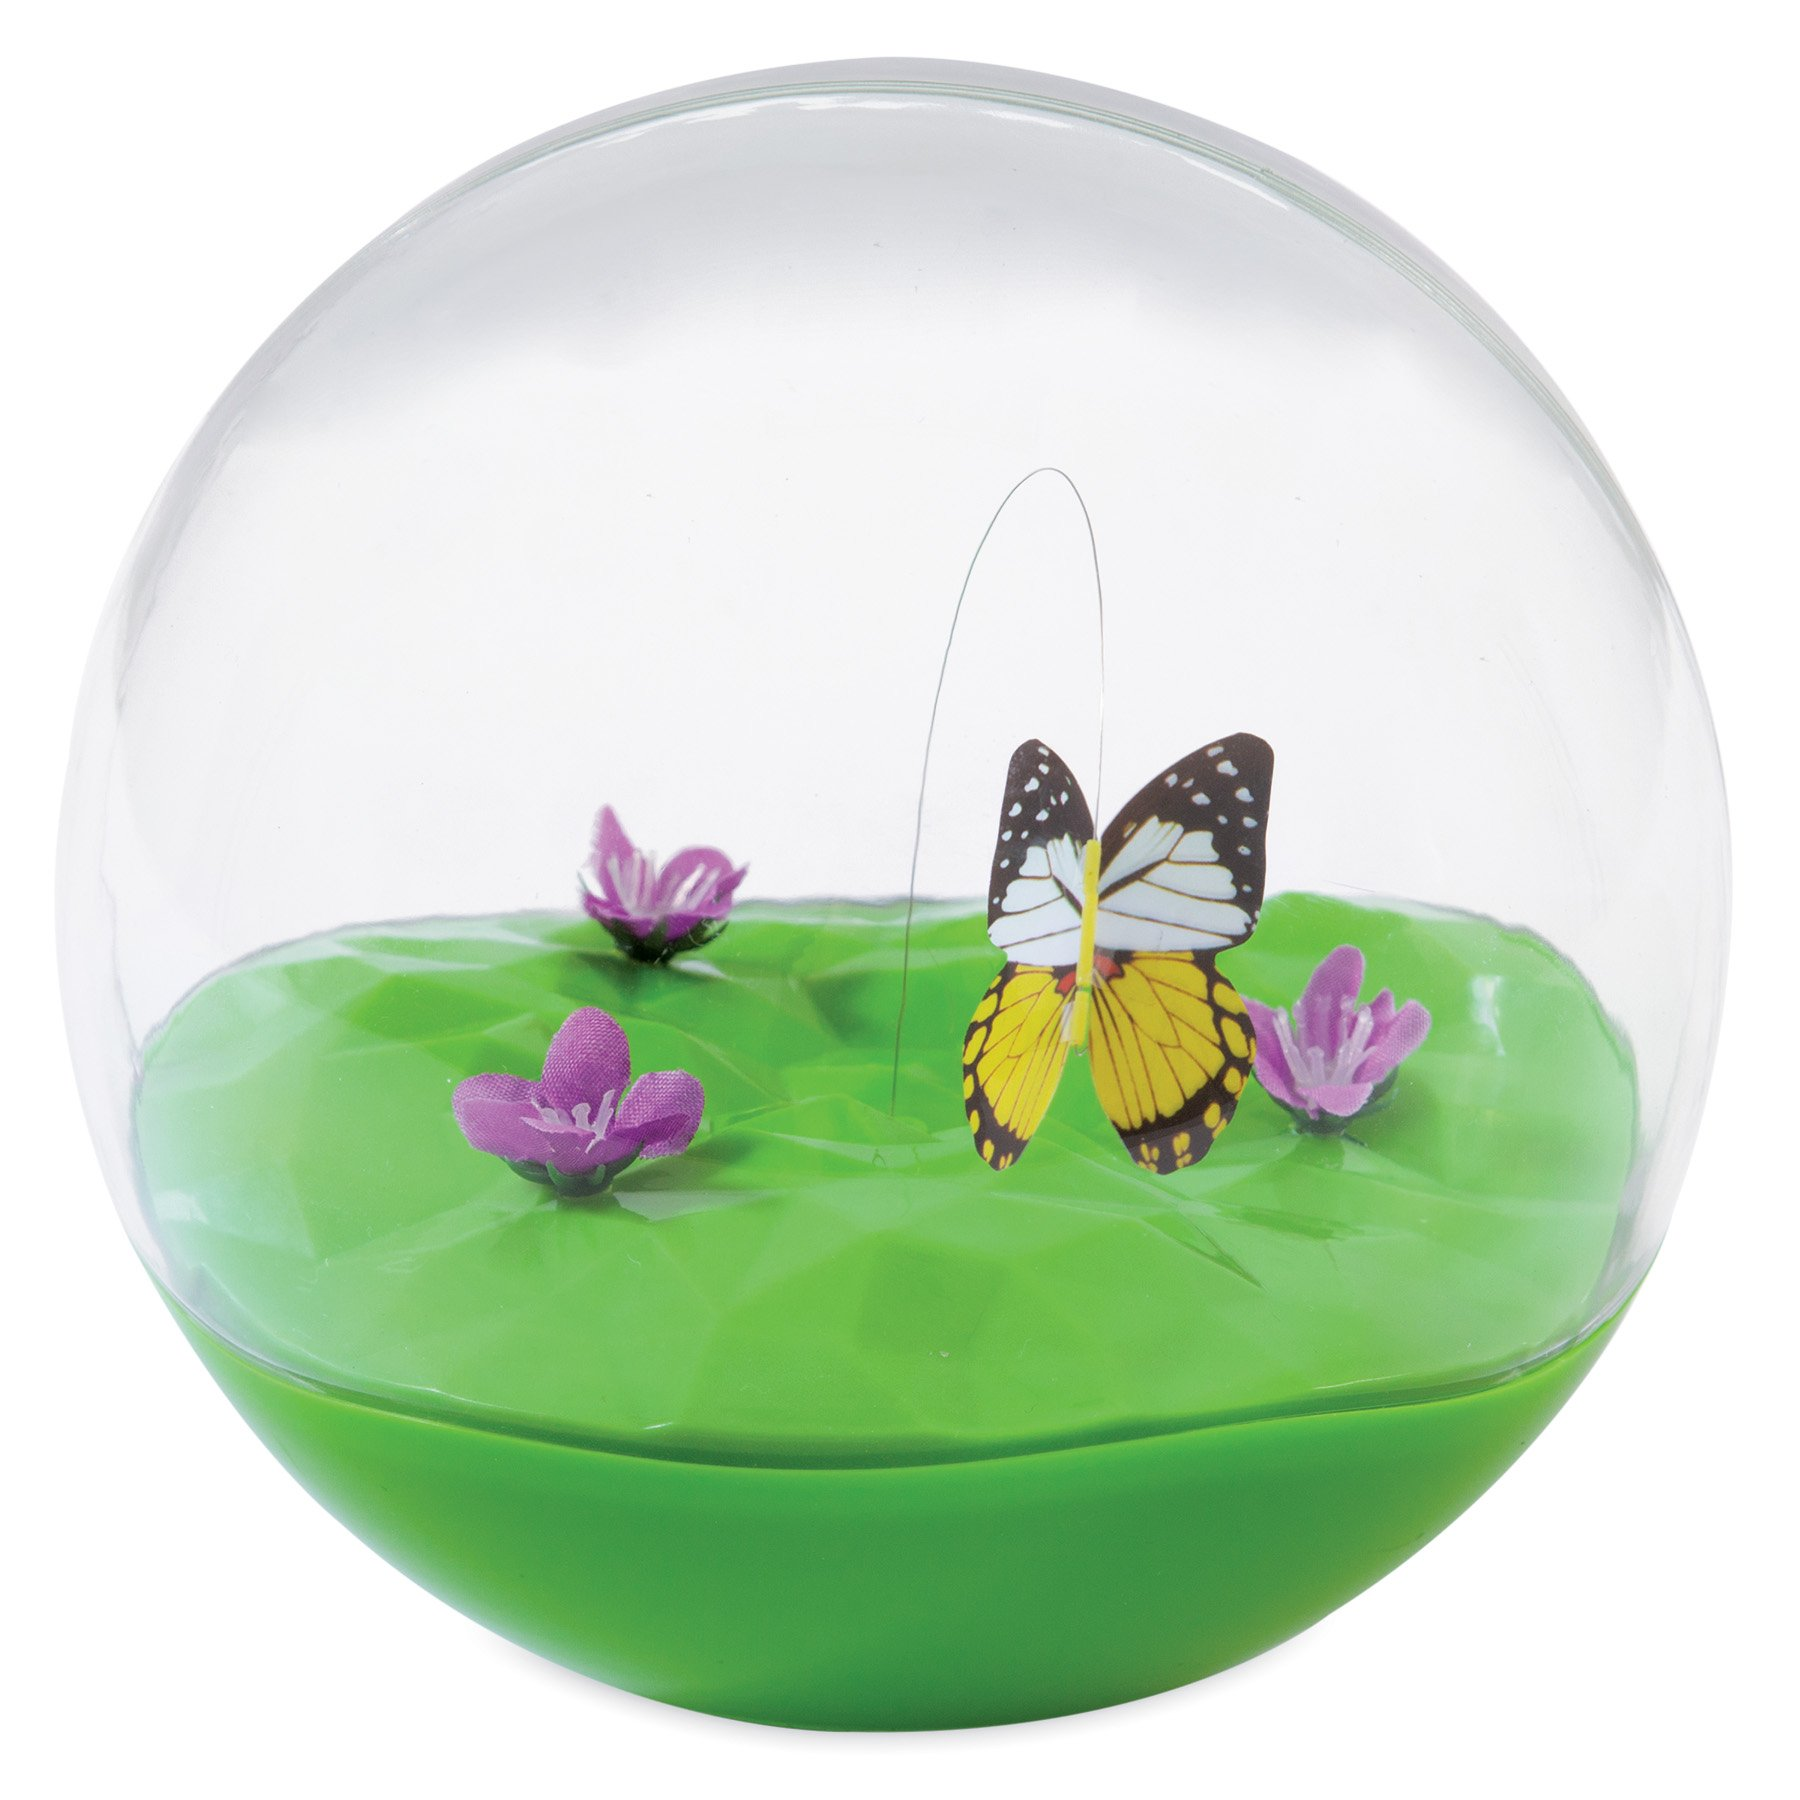 Petmate Jackson Galaxy Butterfly in a Ball Cat Toy by Petmate (Image #2)